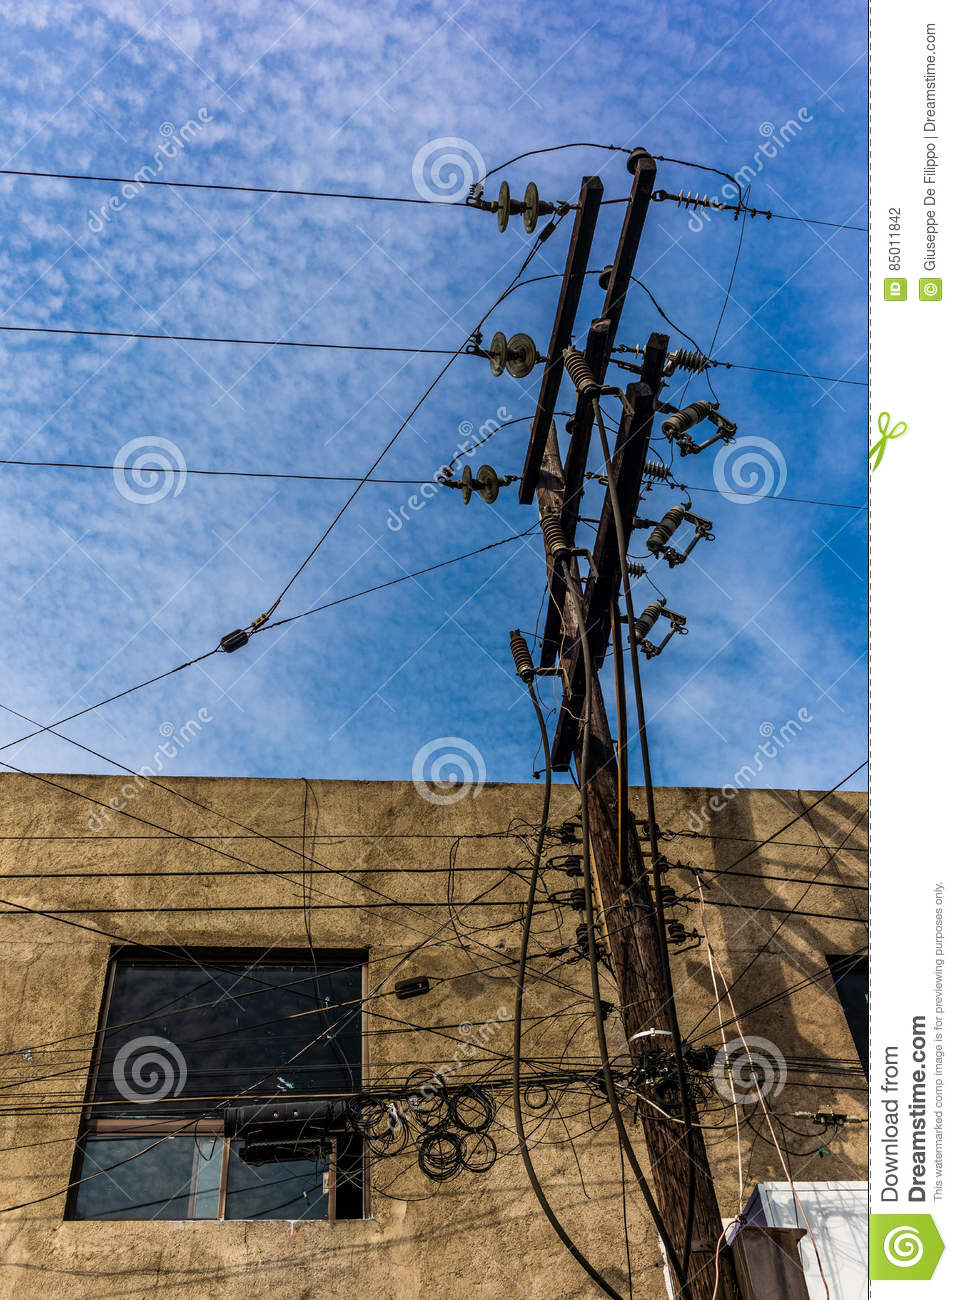 Electricity And Telephone Wires In Mexico Stock Photo Image Of Connection Wiring